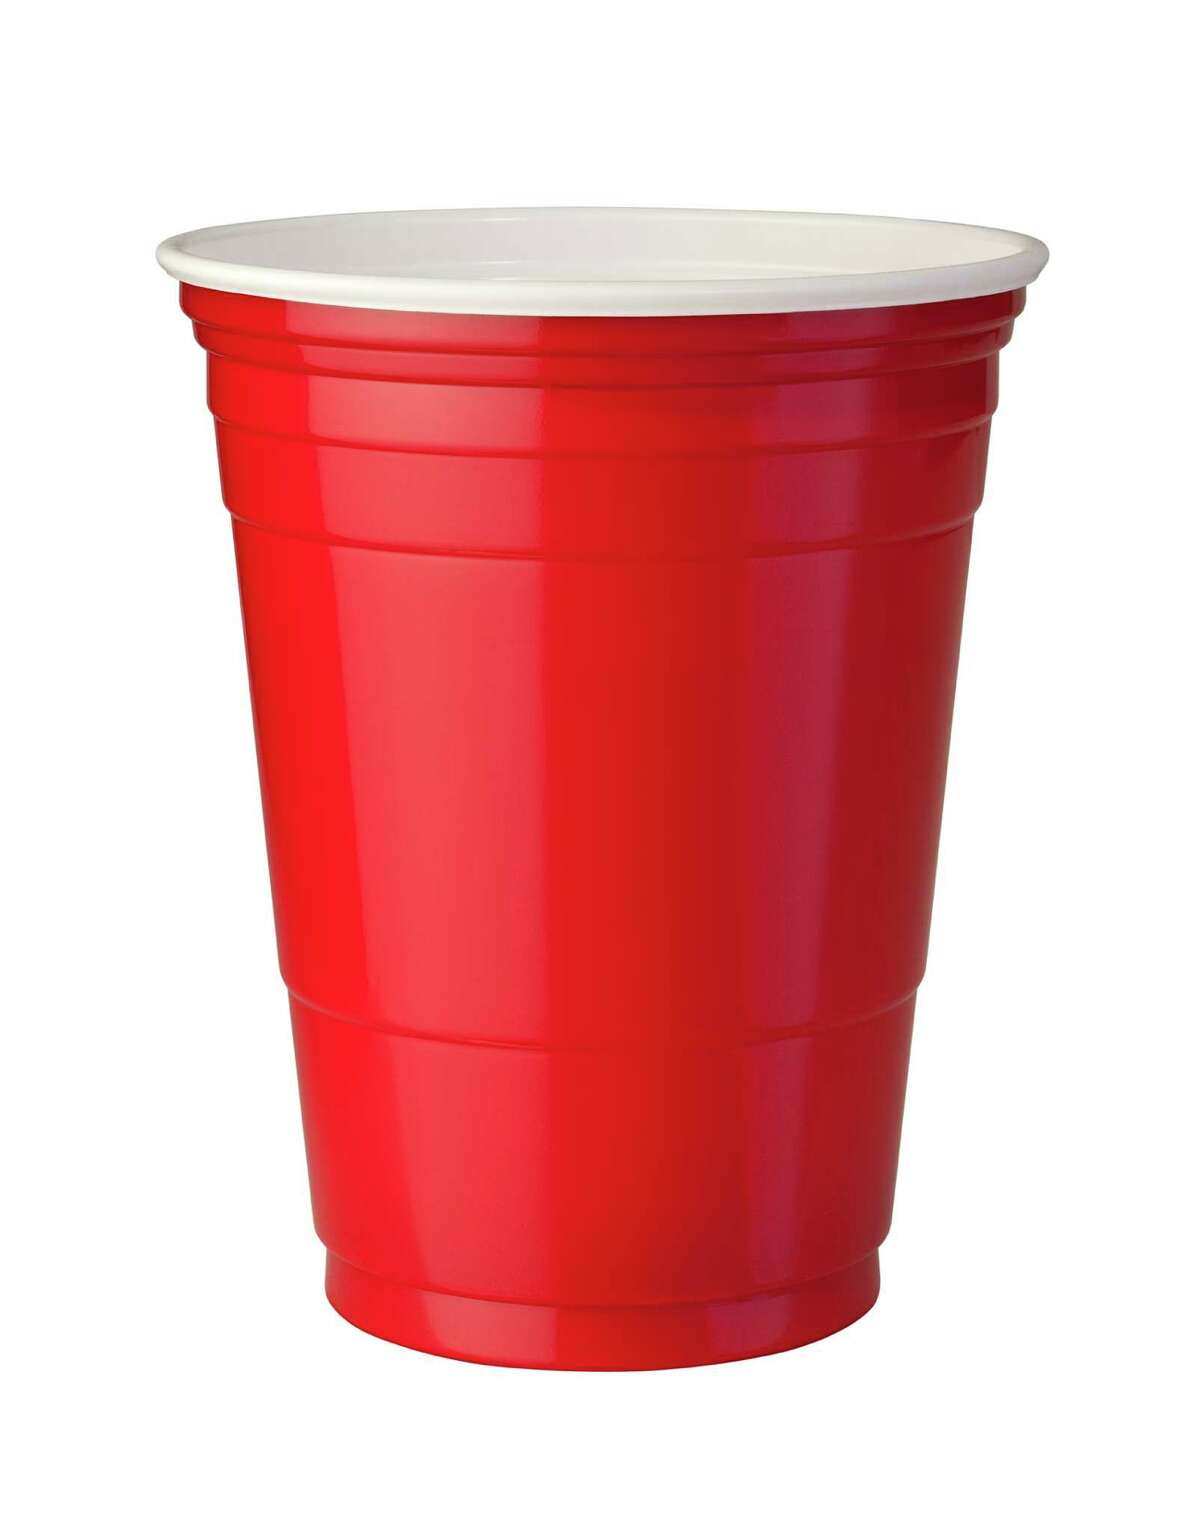 A plastic Solo cup can hold as much as eight servings of alcohol, depending on how much liquor is mixed with other ingredients.